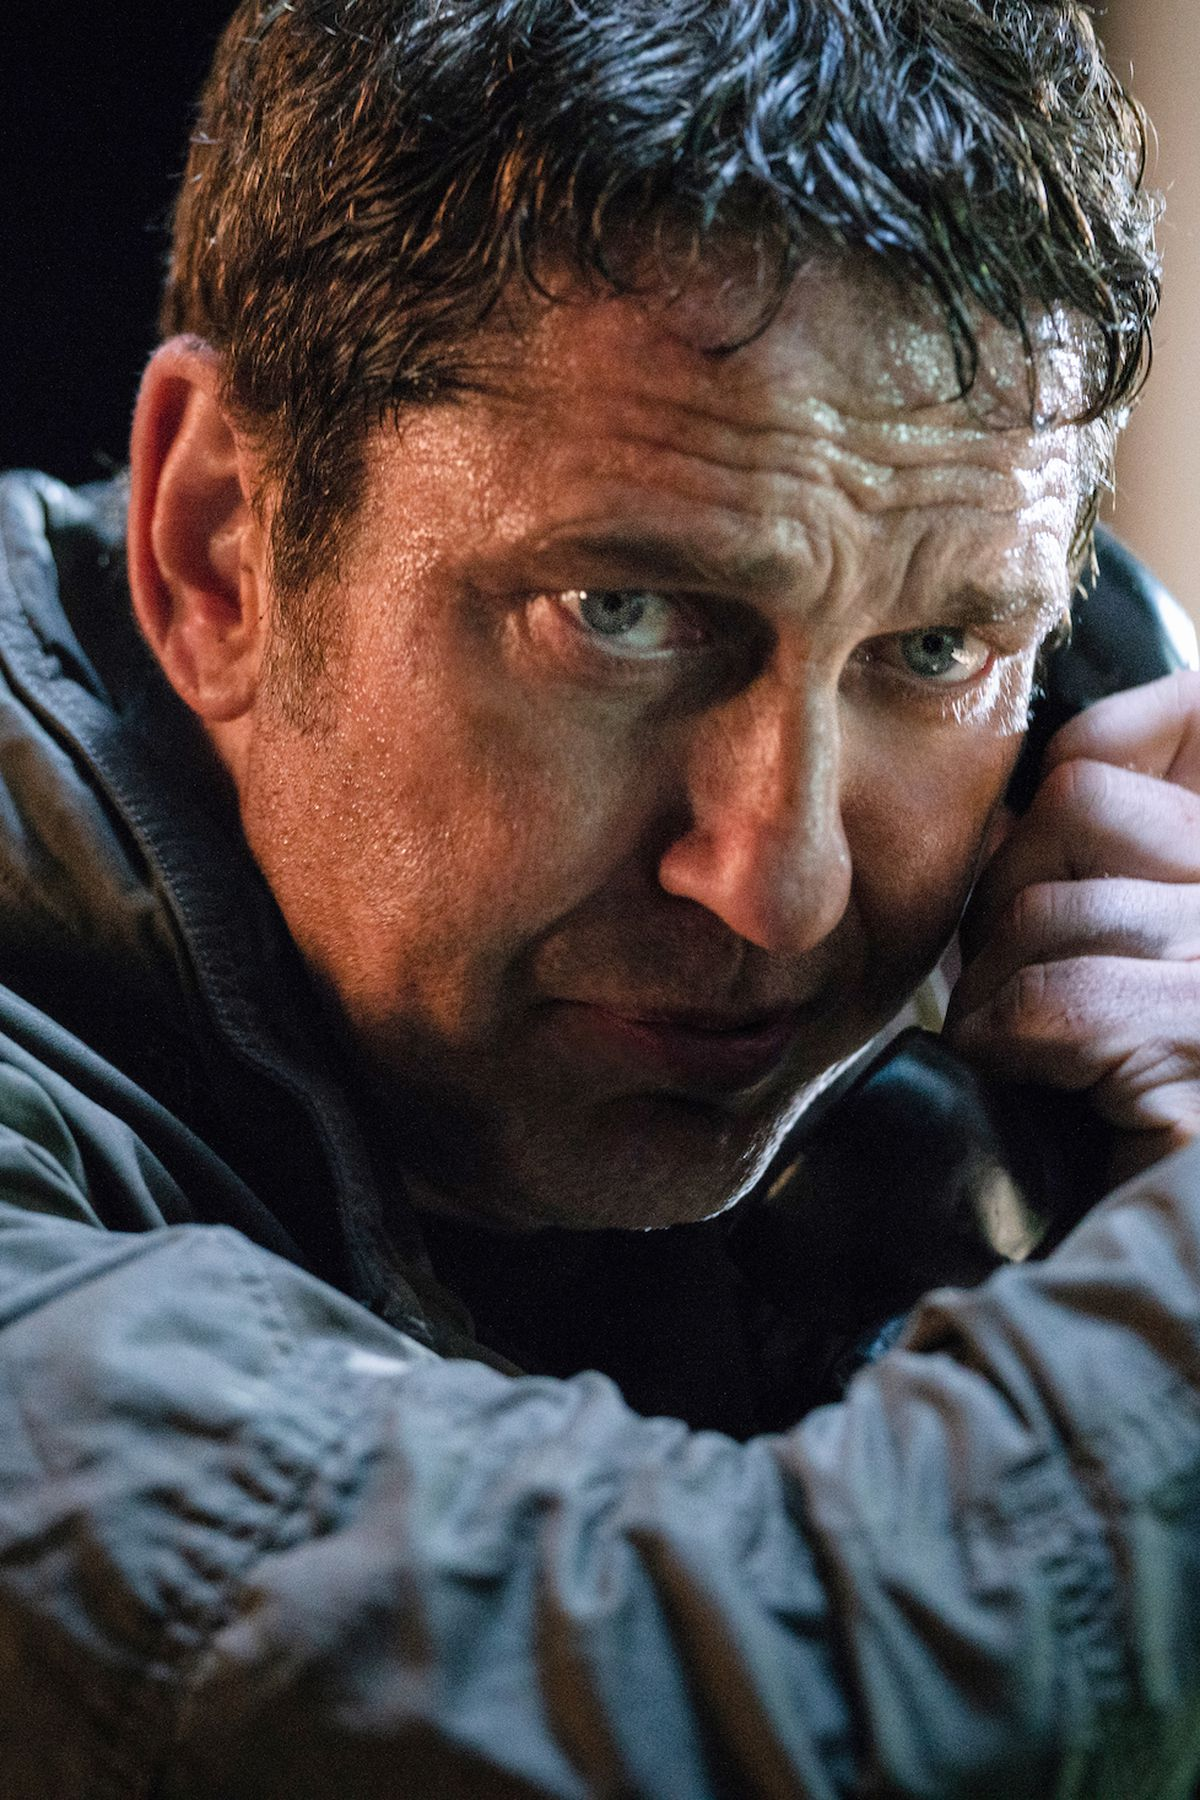 Mike Banning (Gerard Butler) acting paranoid and surly while talking on a pay phone — yes, really! — in Angel Has Fallen